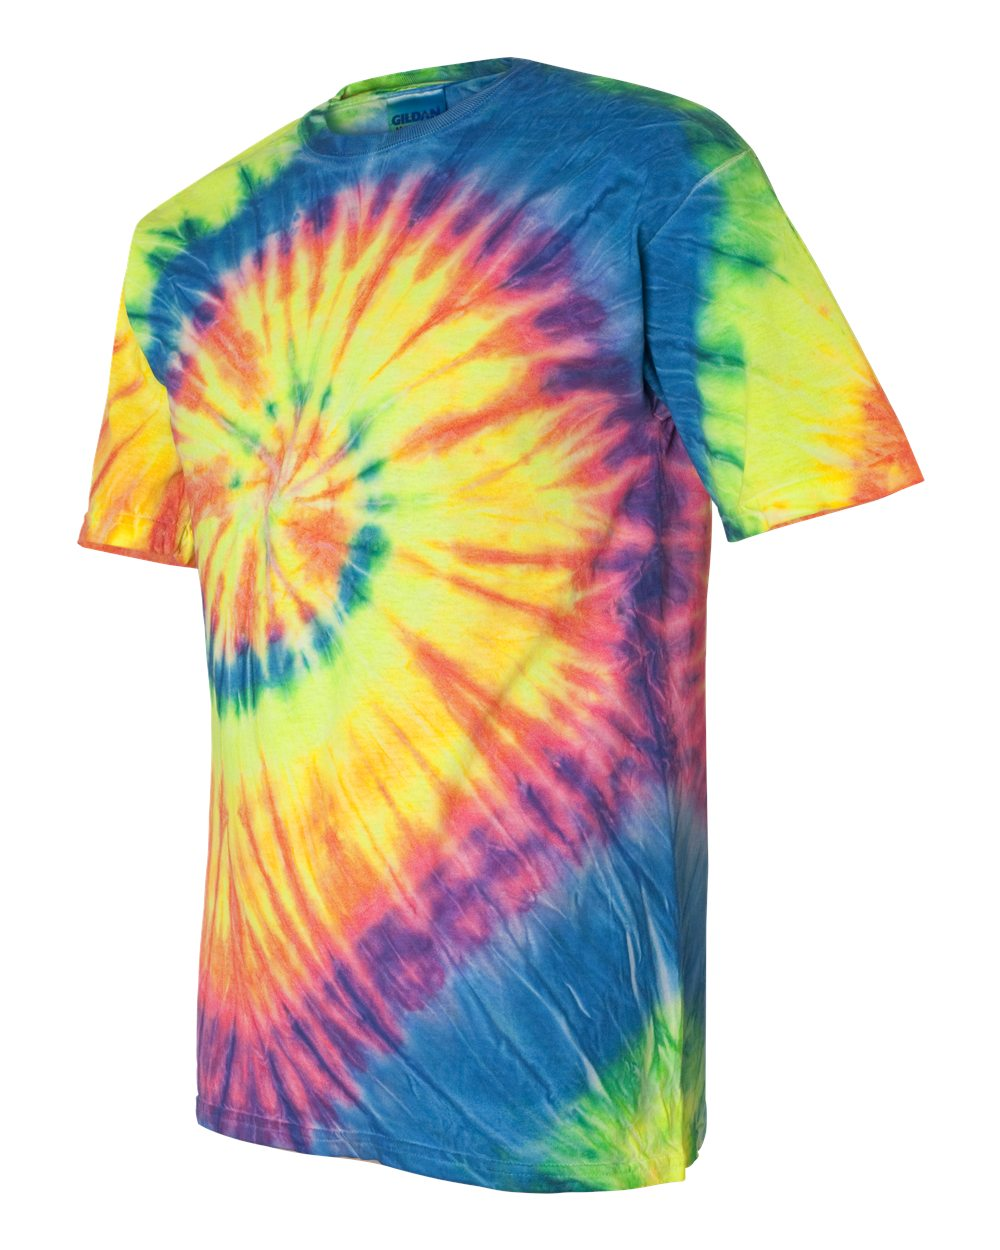 Dyenomite 200MS - Multi-Color Spiral Short Sleeve T-Shirt